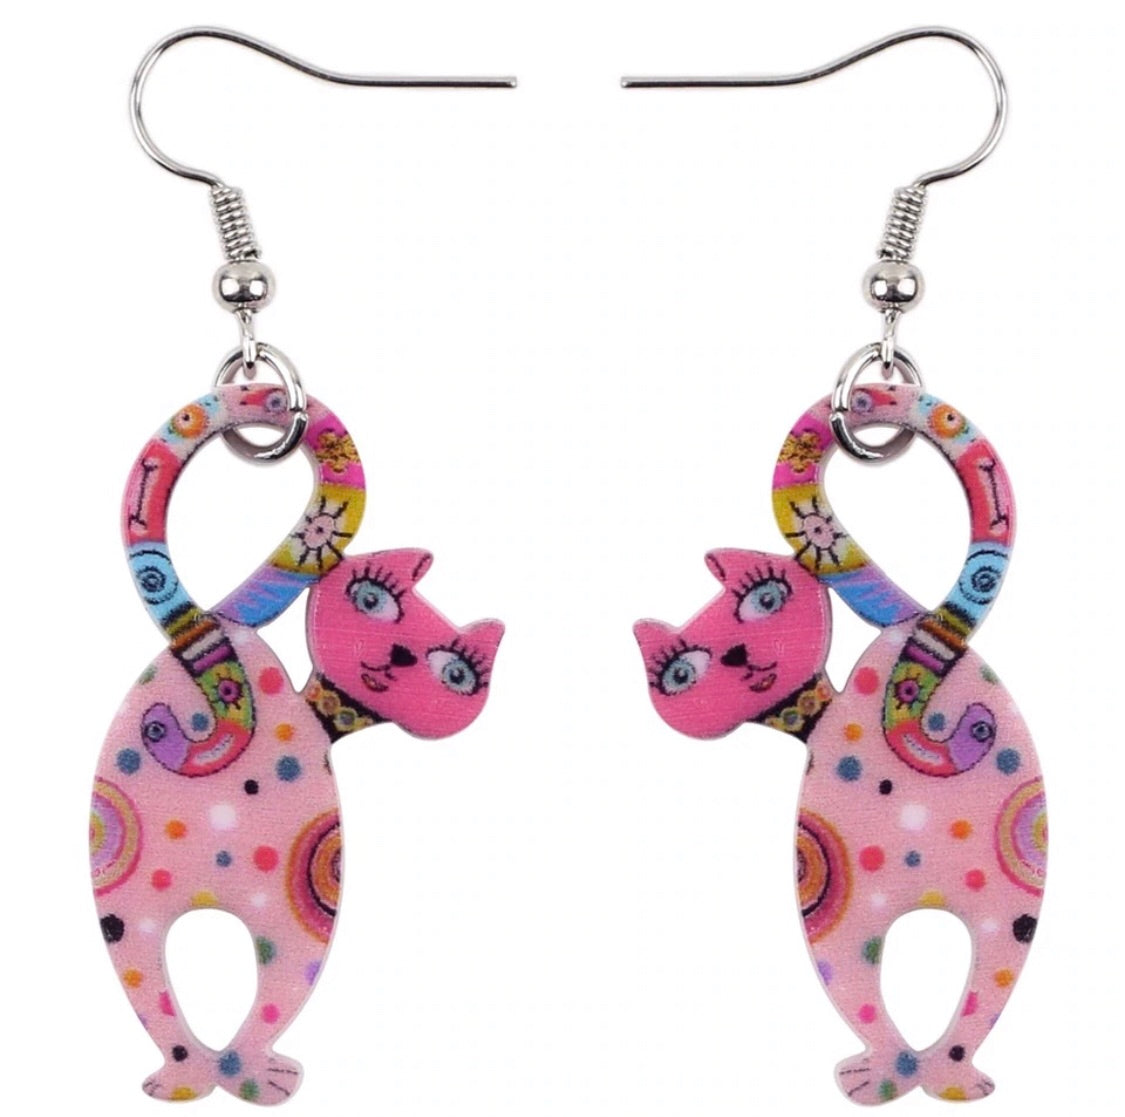 Midcentury style kitty earrings hot pink